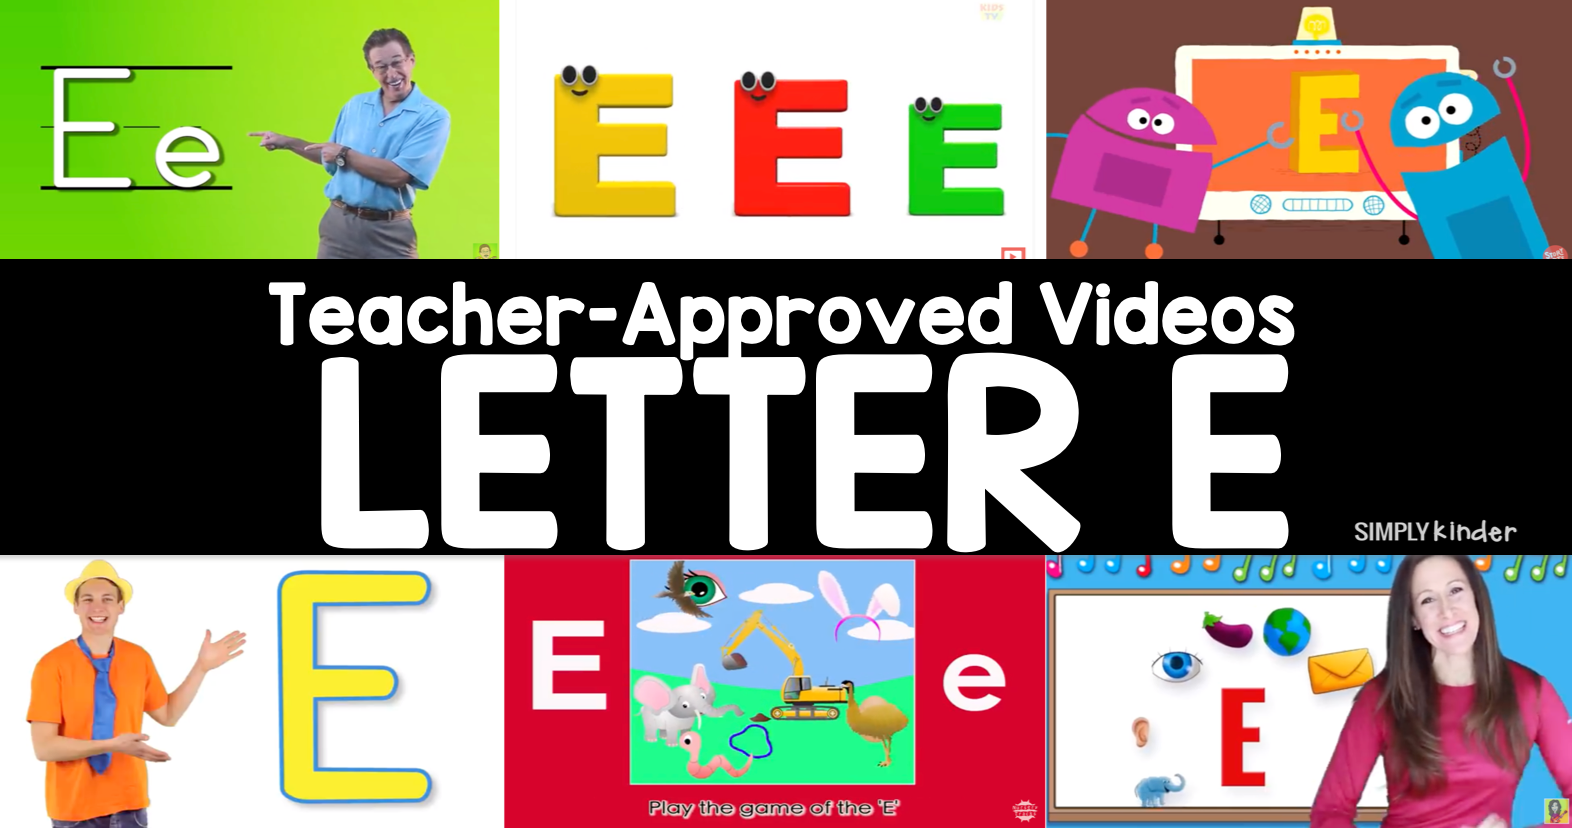 Teacher-Approved Videos Letter E